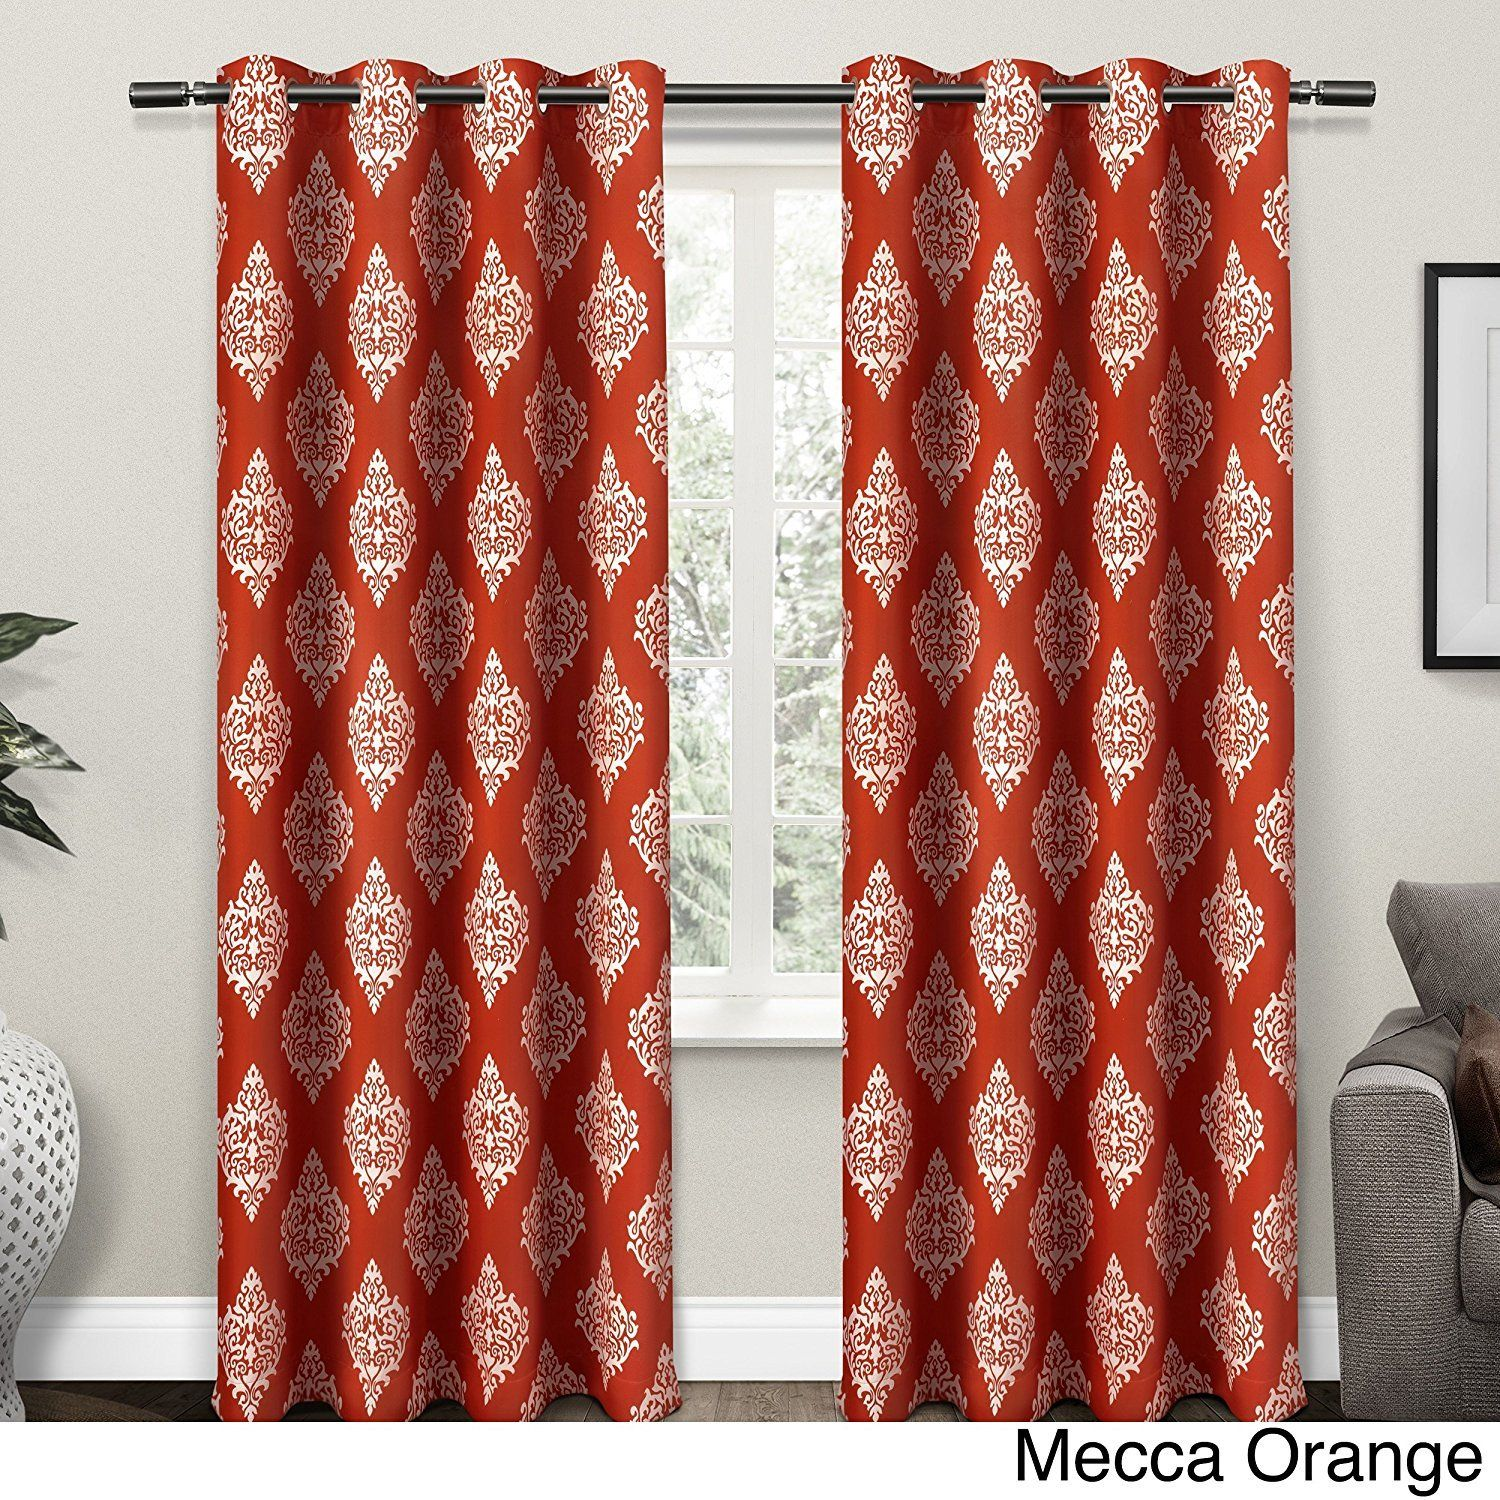 96 Inch Mecca Orange White Medallion Curtains Panel Pair Set ...